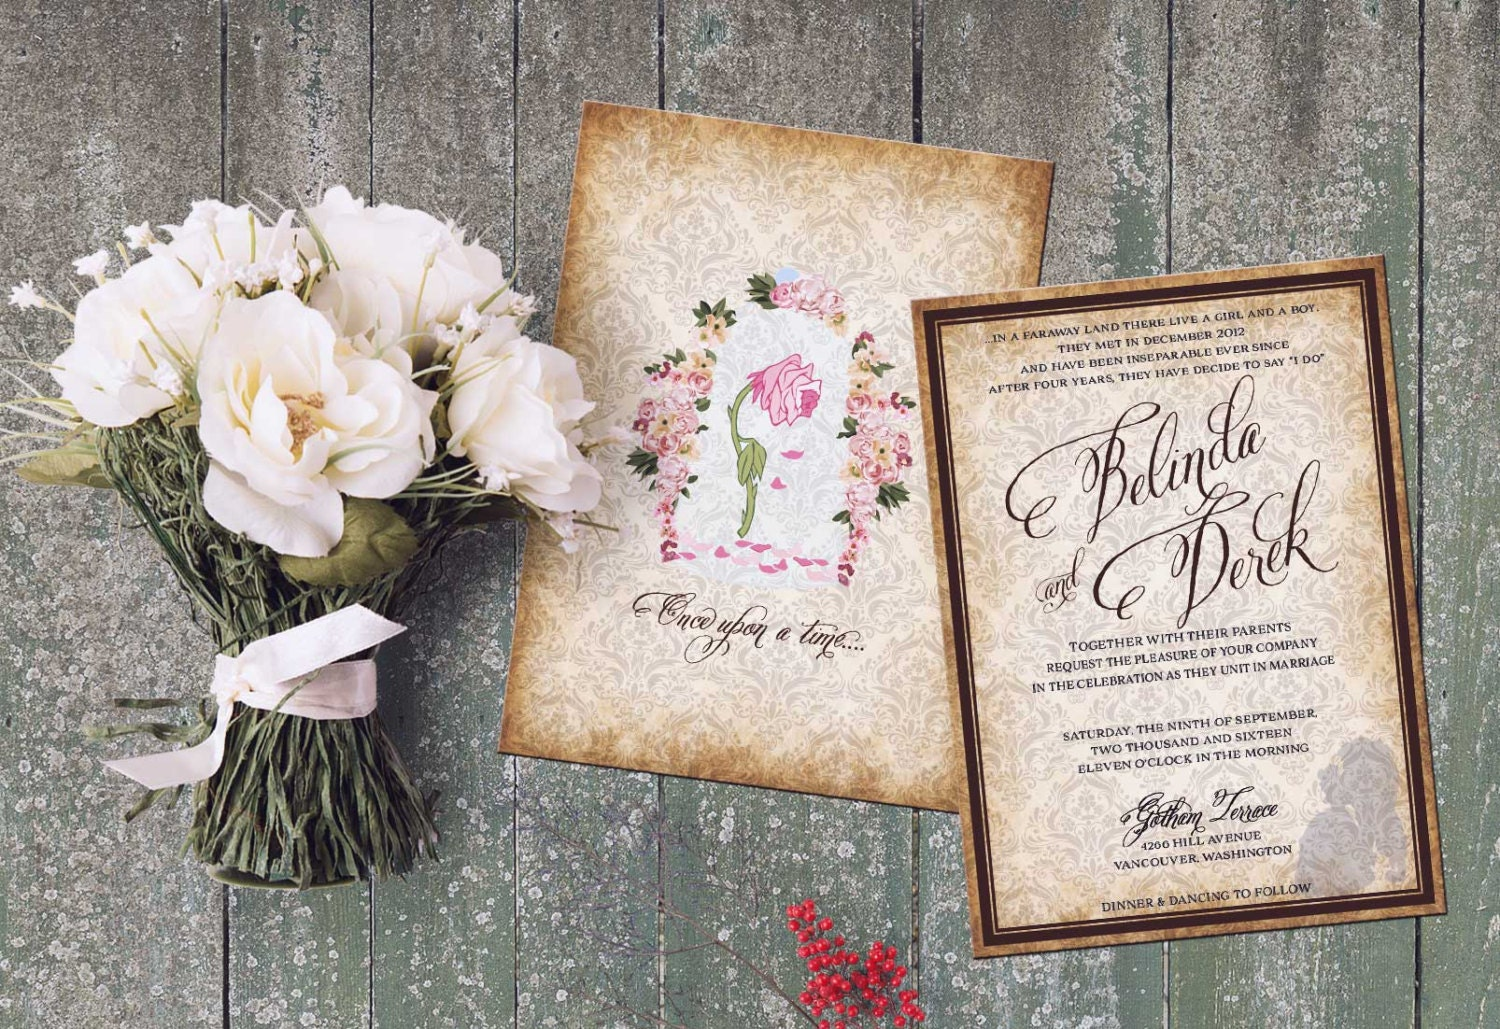 Beauty and Beast Wedding Set Invitation. Inspired Beauty and